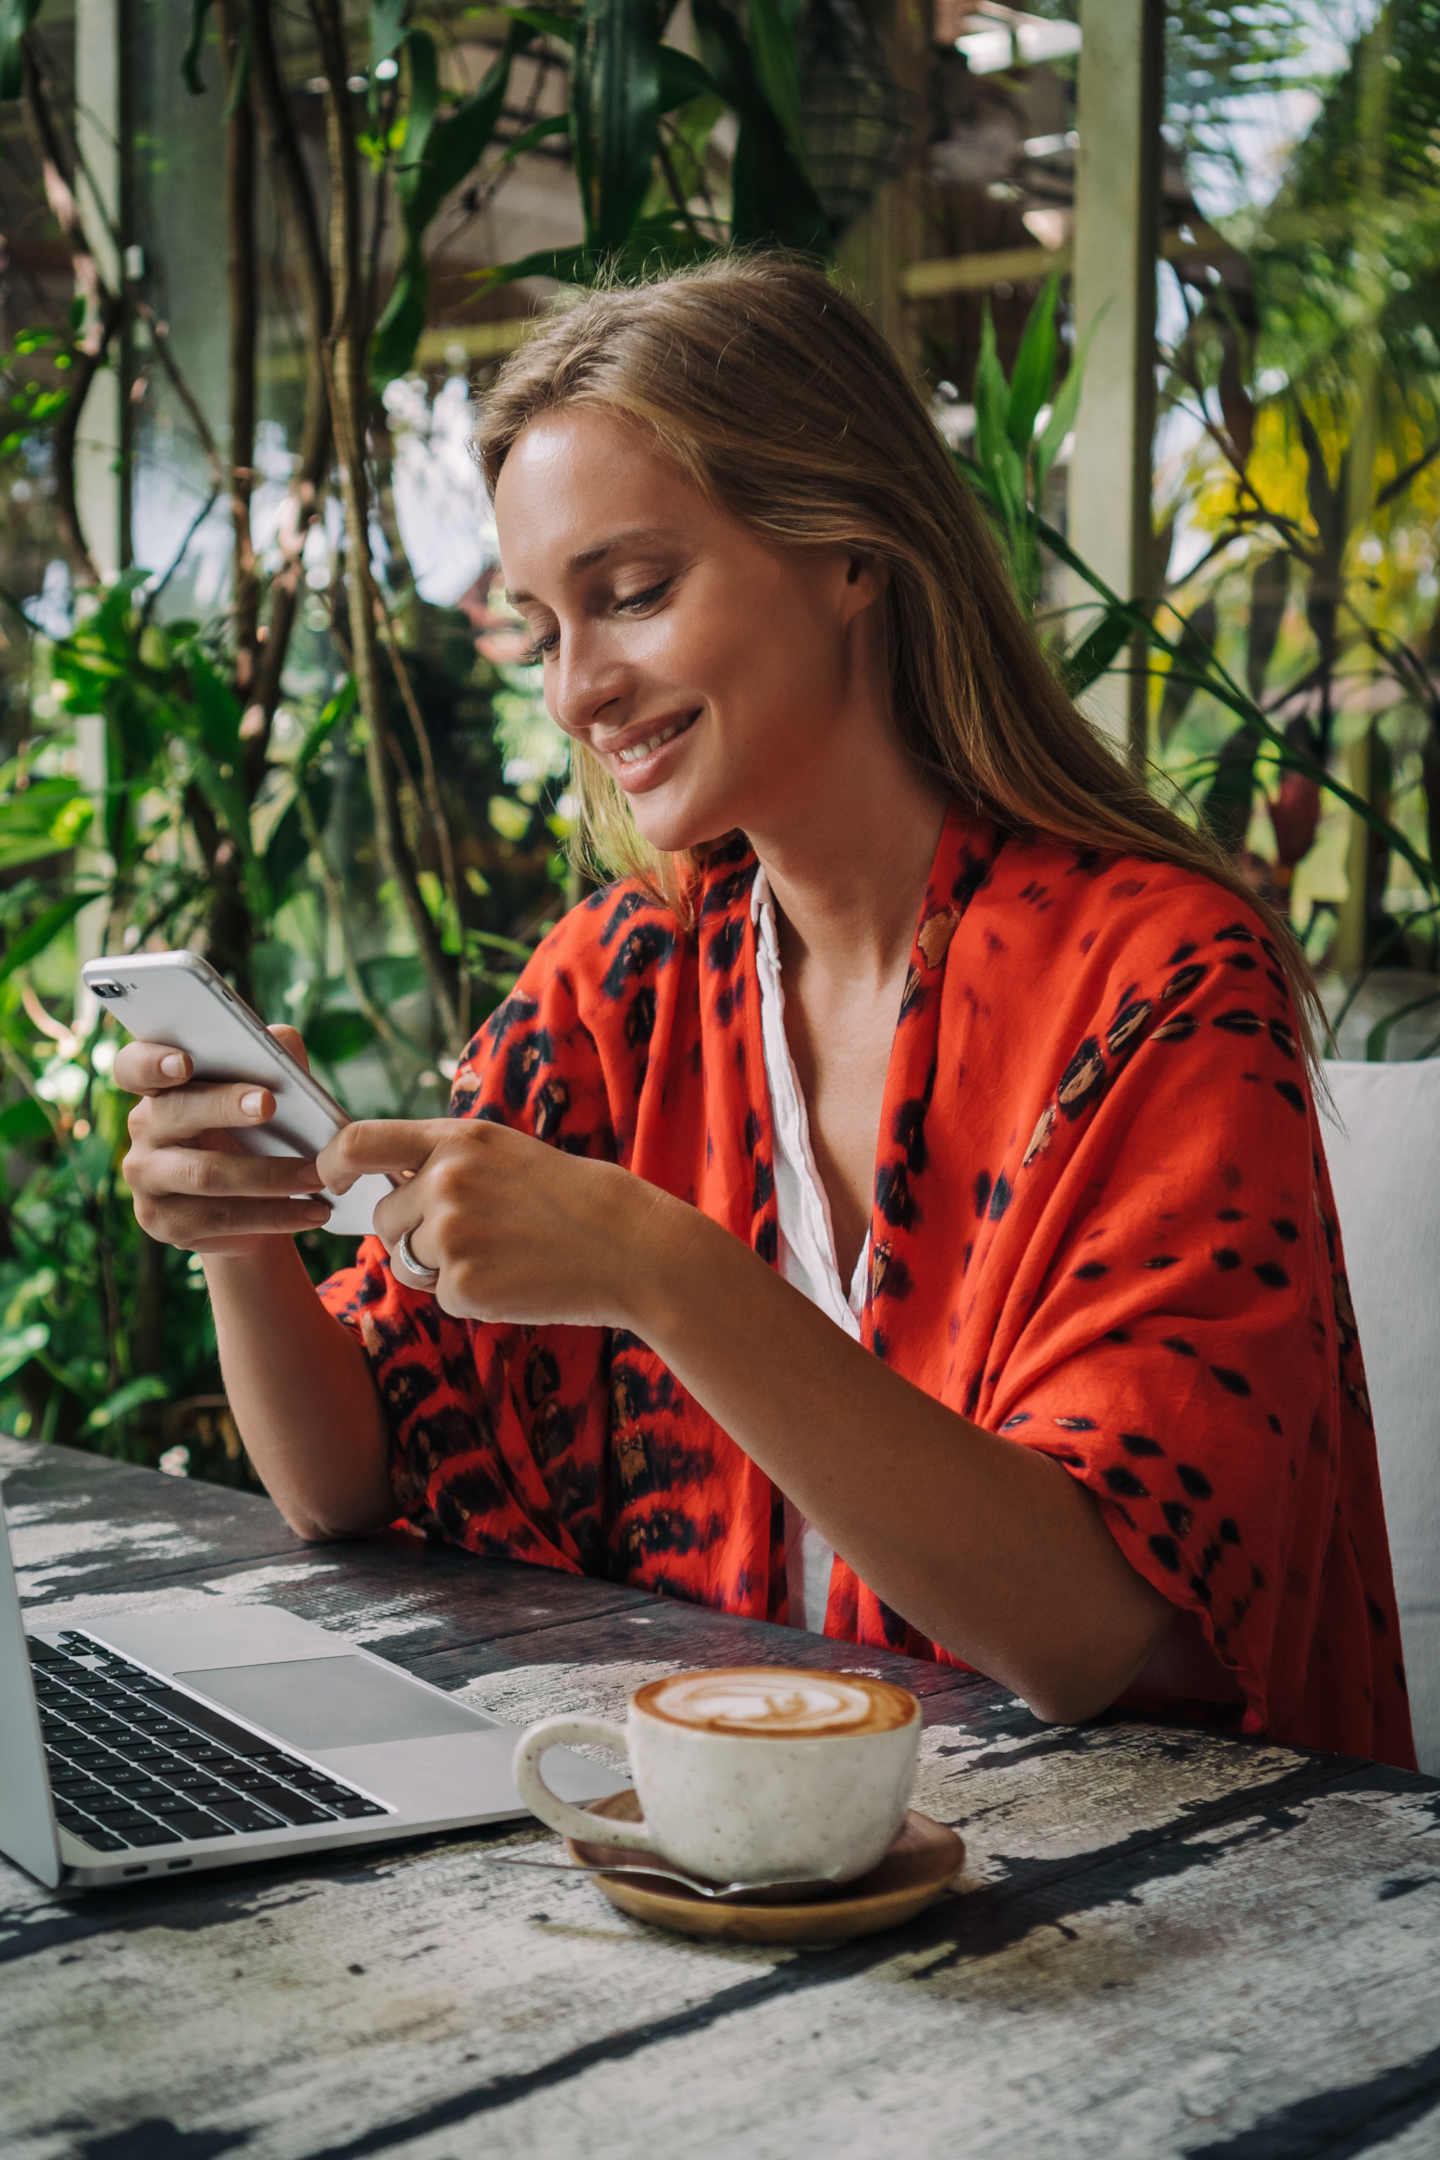 Why should you become a digital nomad?